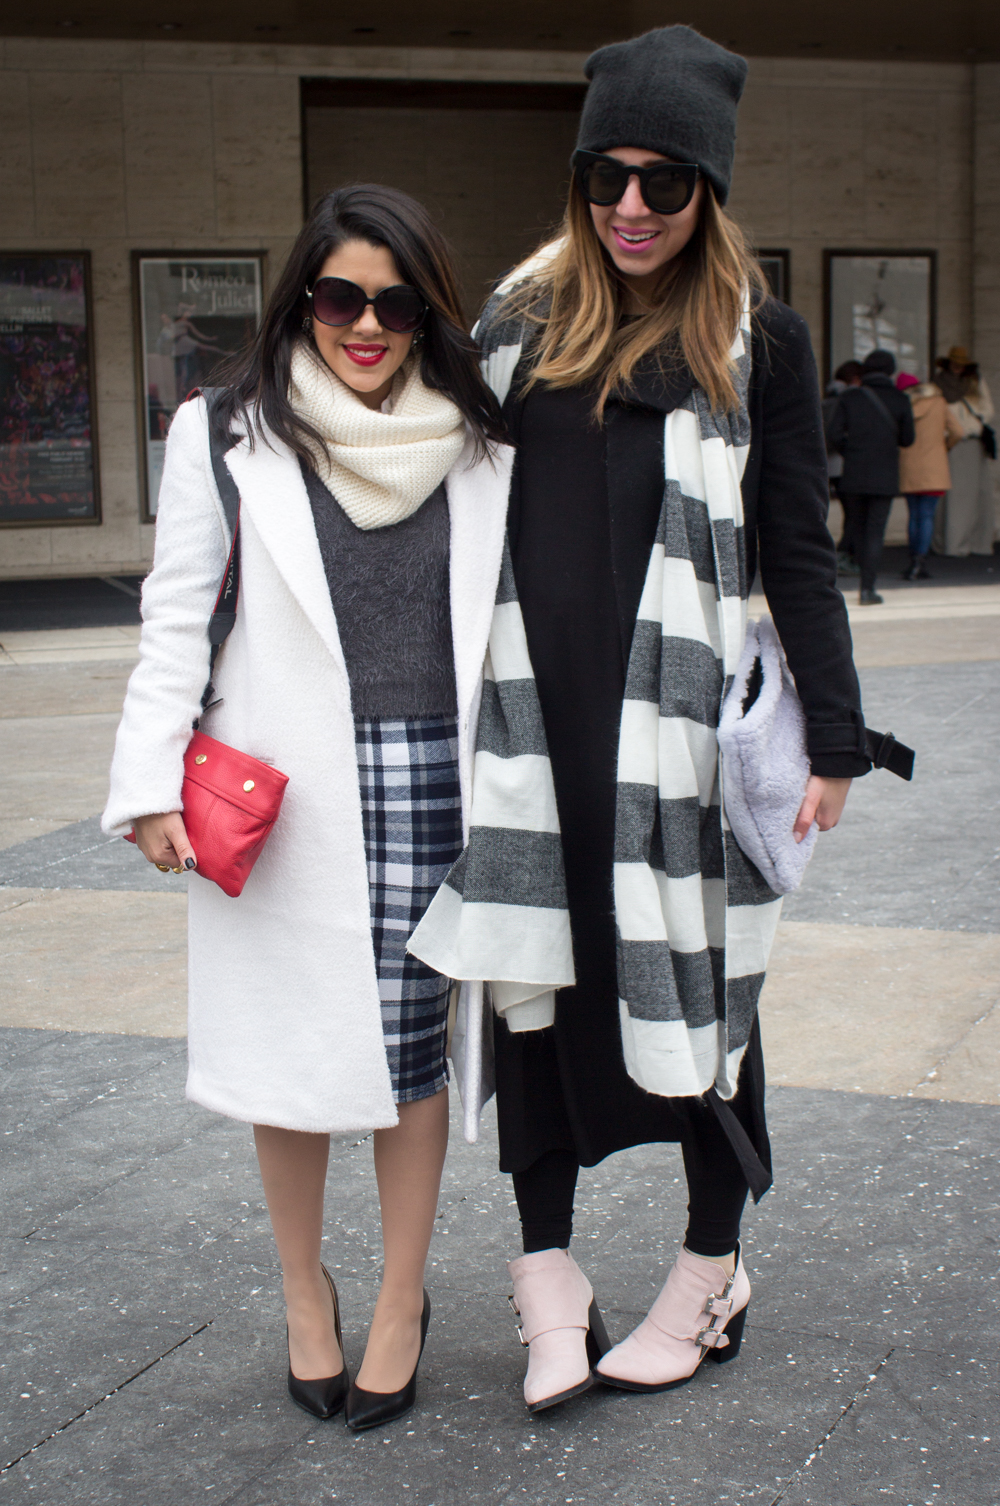 Street Style: Fashionable Duos and Trios at New York Fashion Week // www.brokeandchic.com